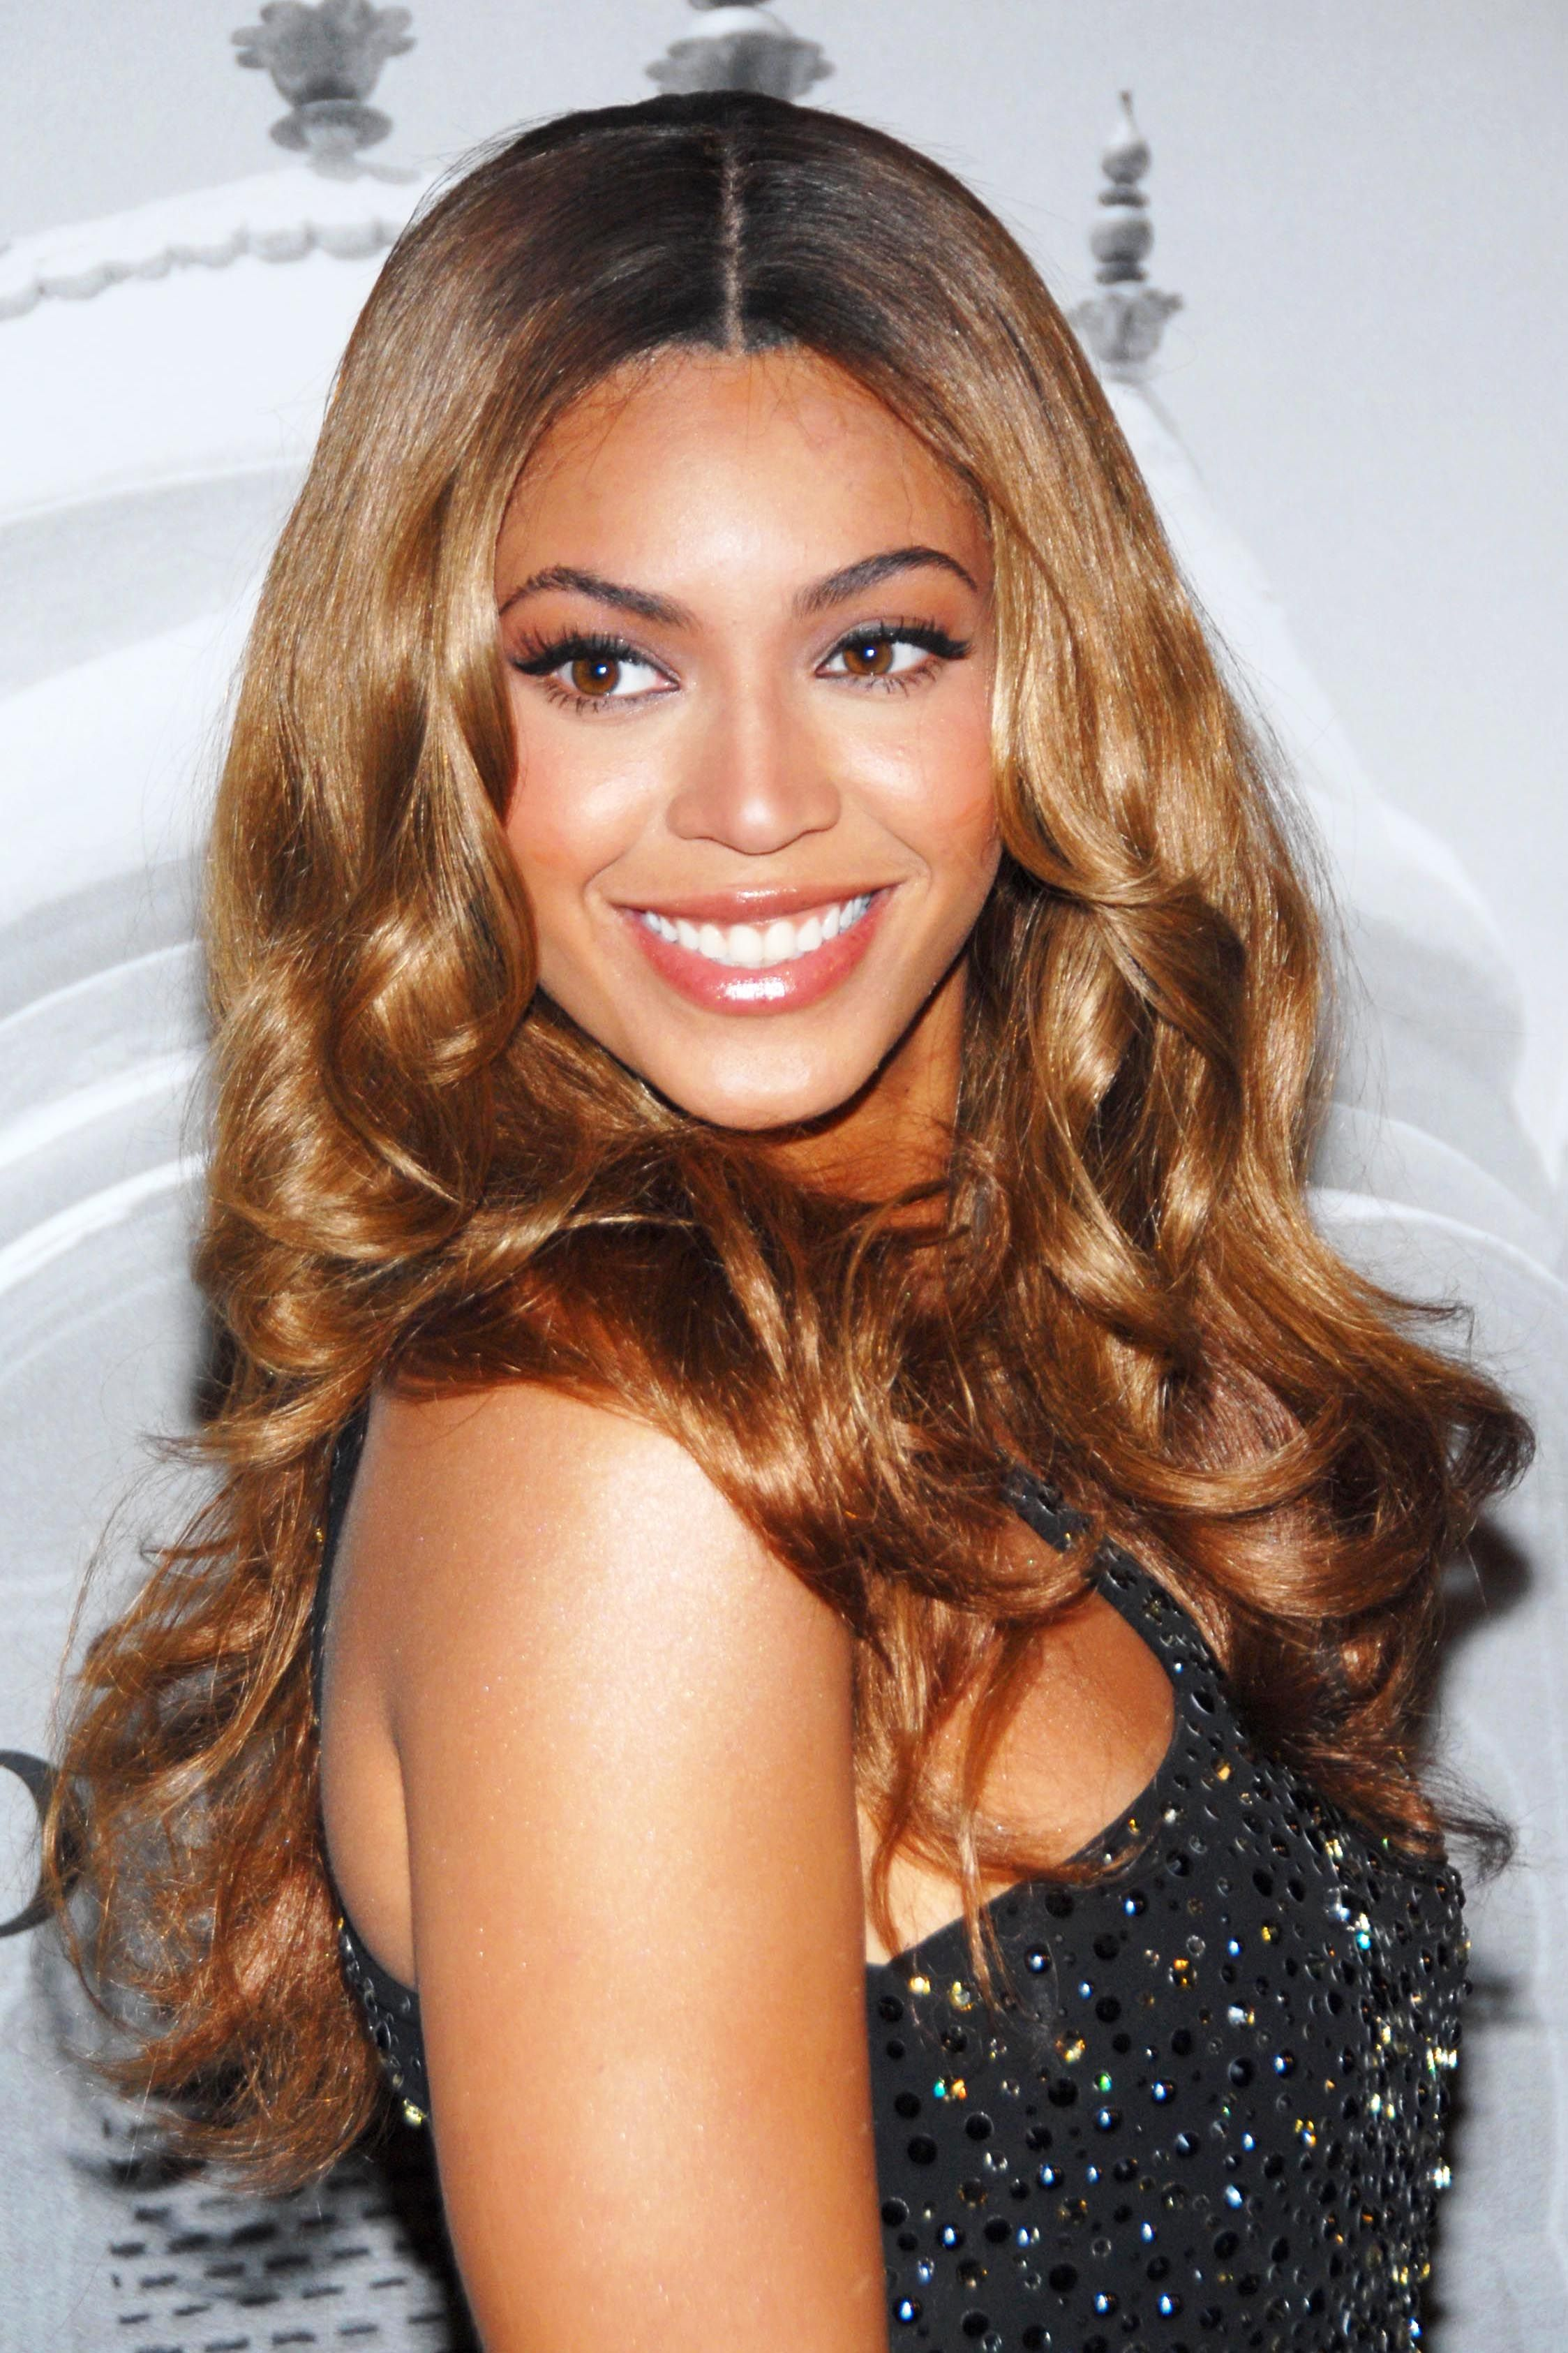 80 Best Beyonce Hairstyles Of All Time Beyonce S Evolving Hair Looks